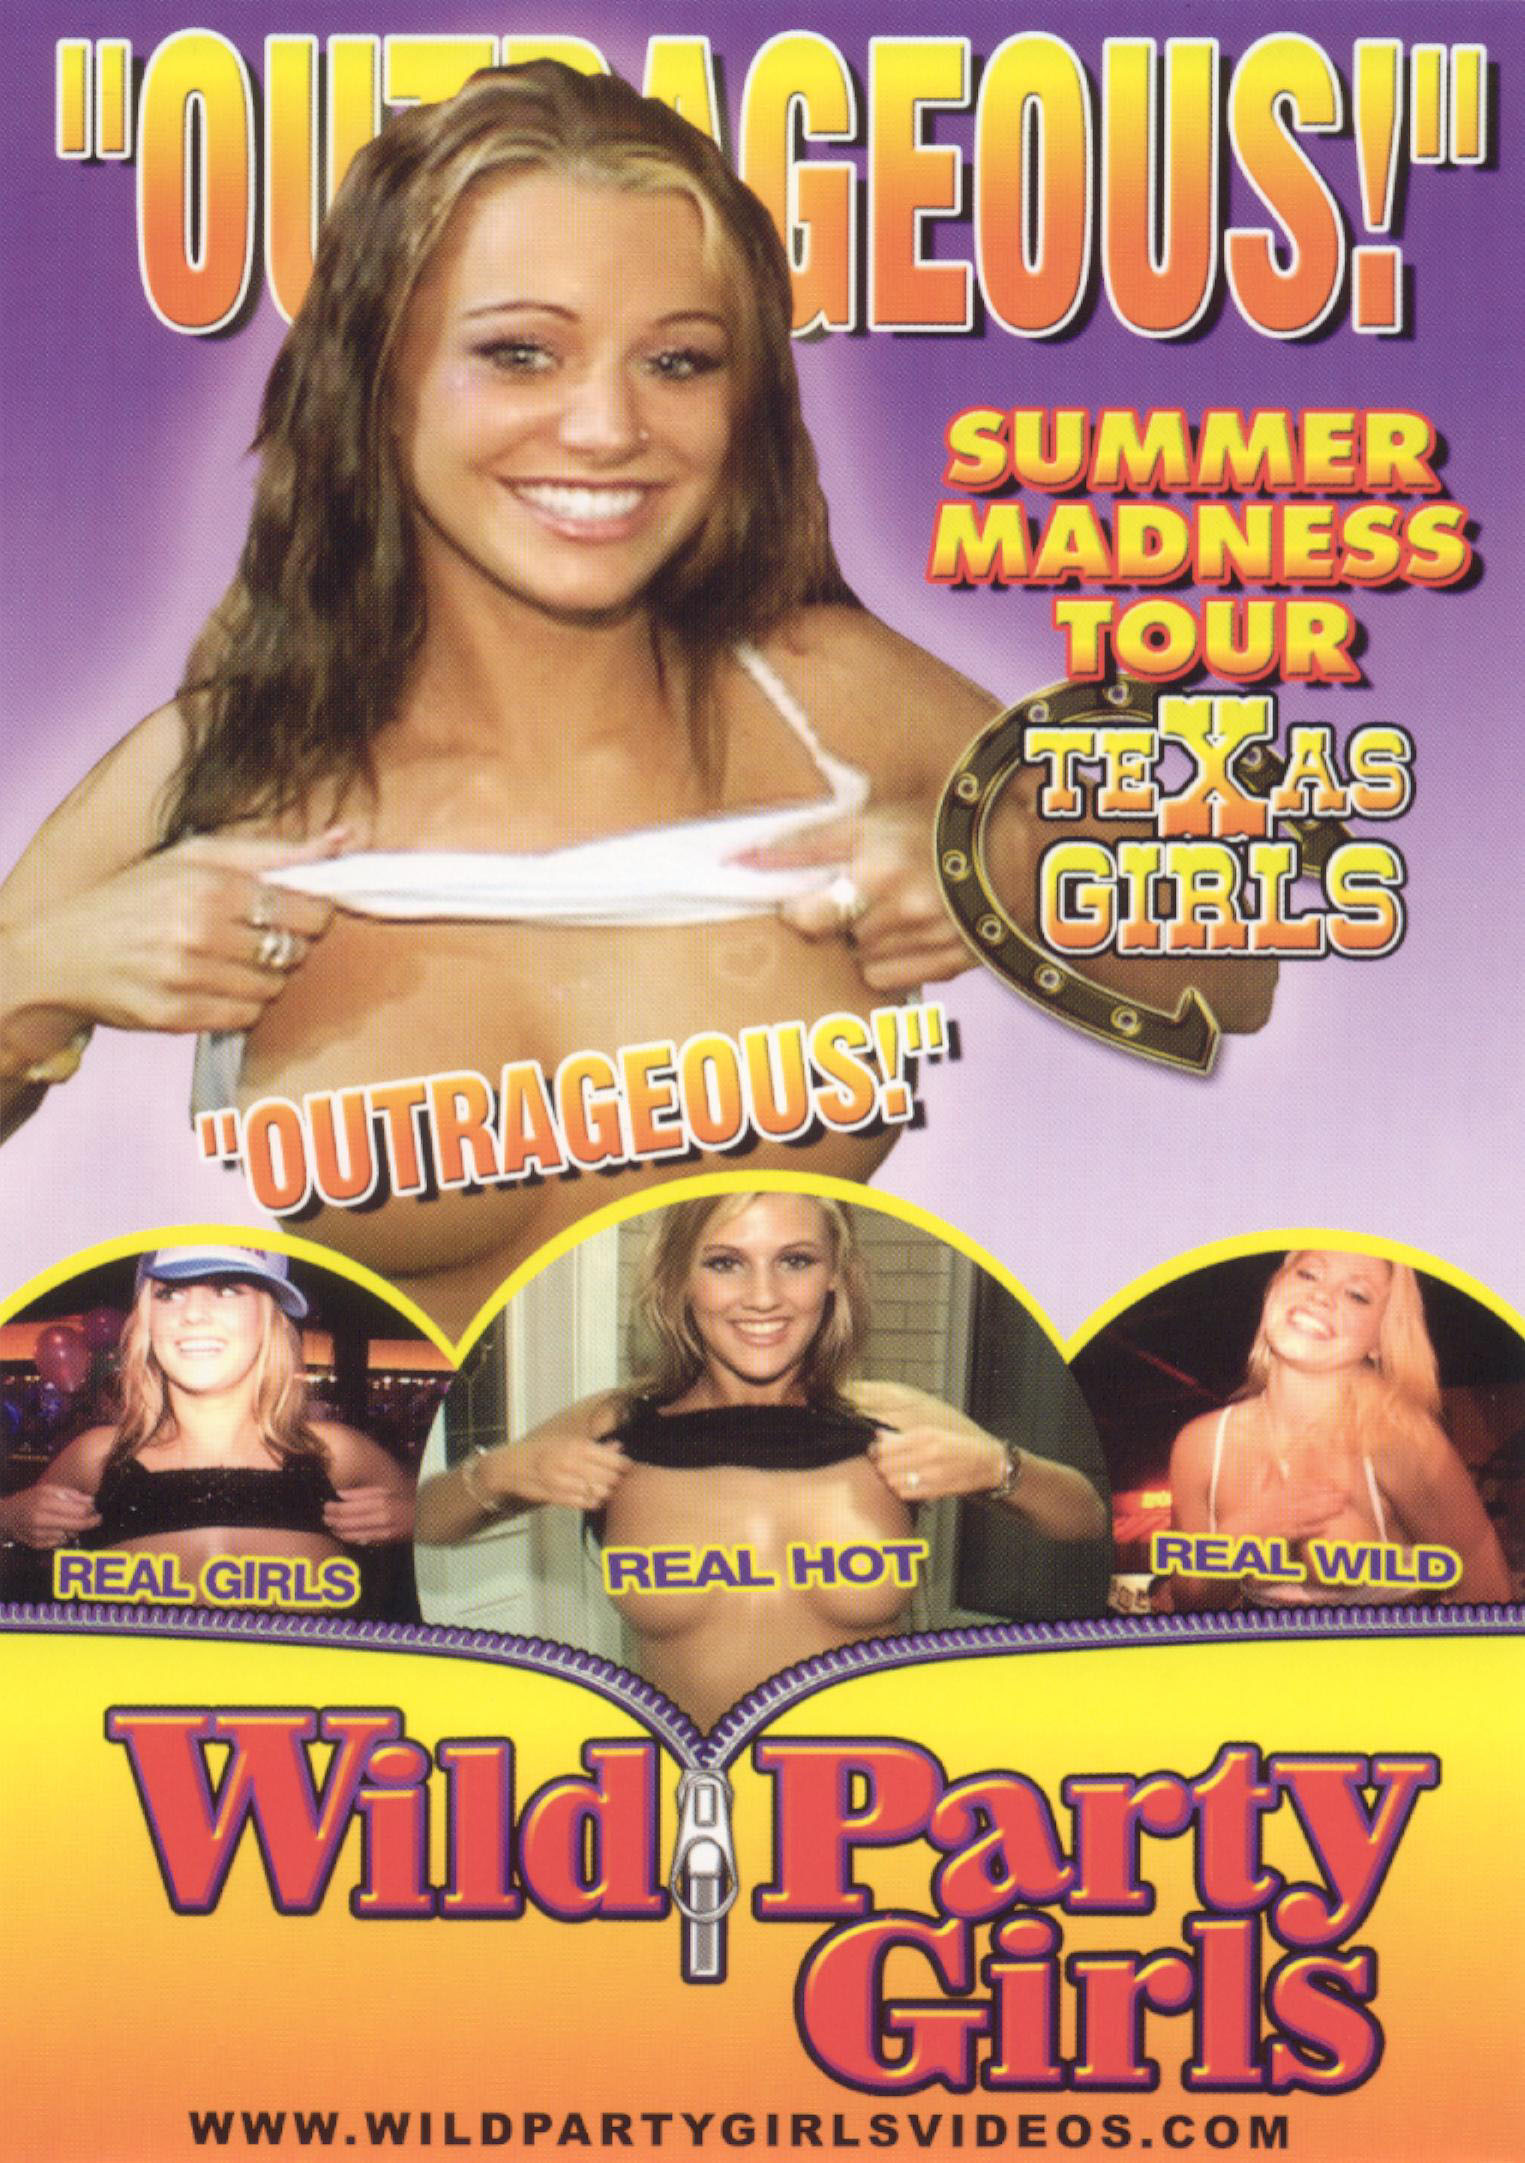 Wild Party Girls: Summer Madness Tour - Texas Girls